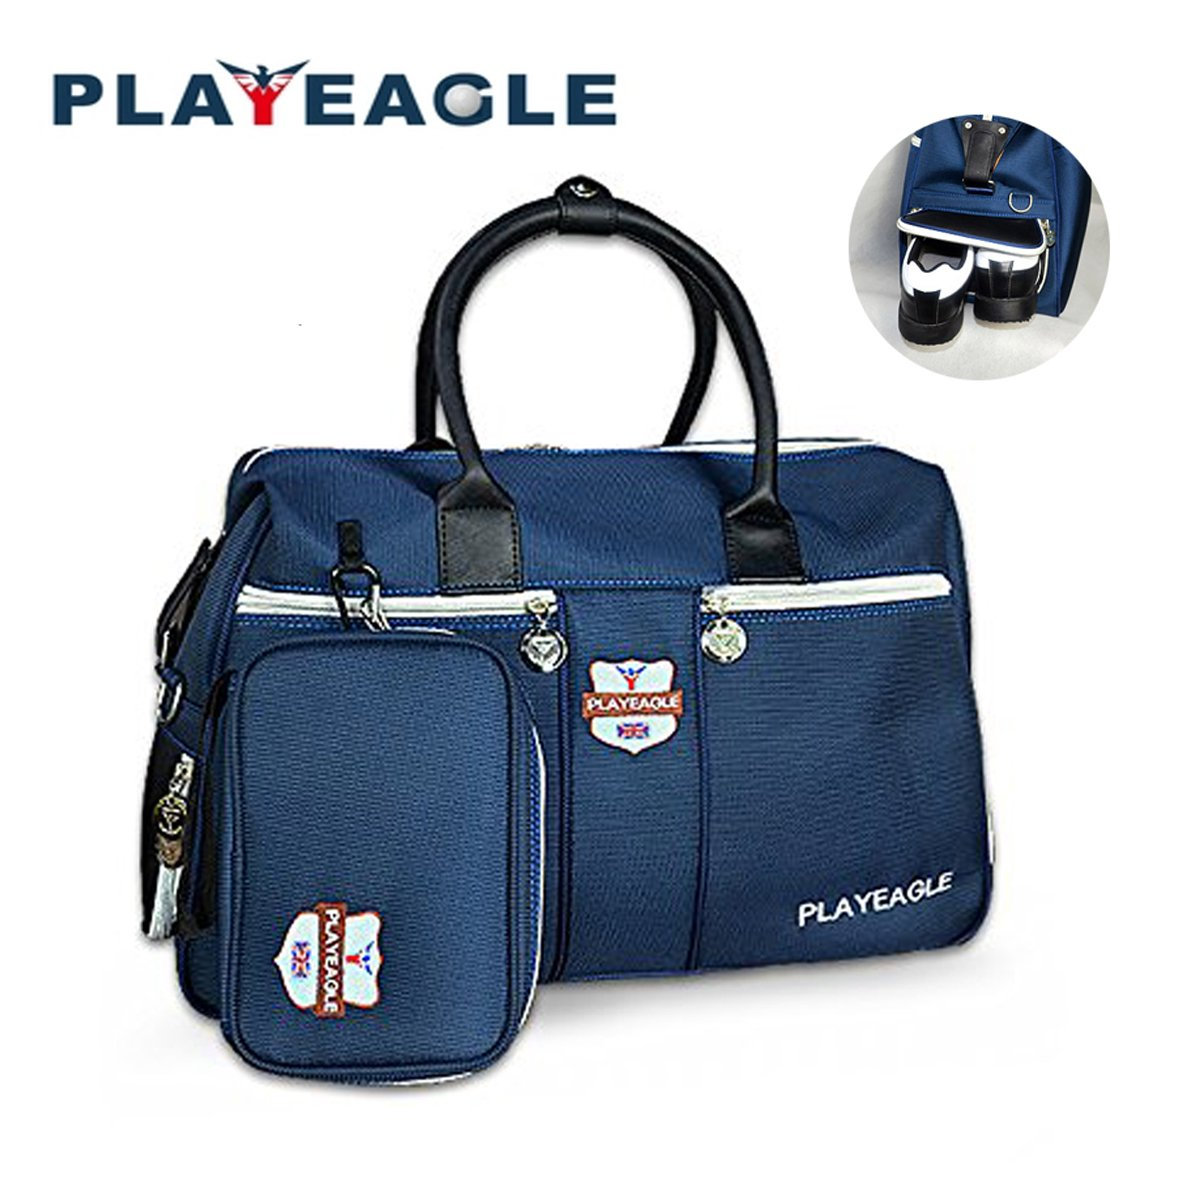 PLAYEAGLE Nylon Waterproof Golf Wrap Bag with Shoes Pocket Golf Duffle Bag Collection for Travel with Mini Handbag